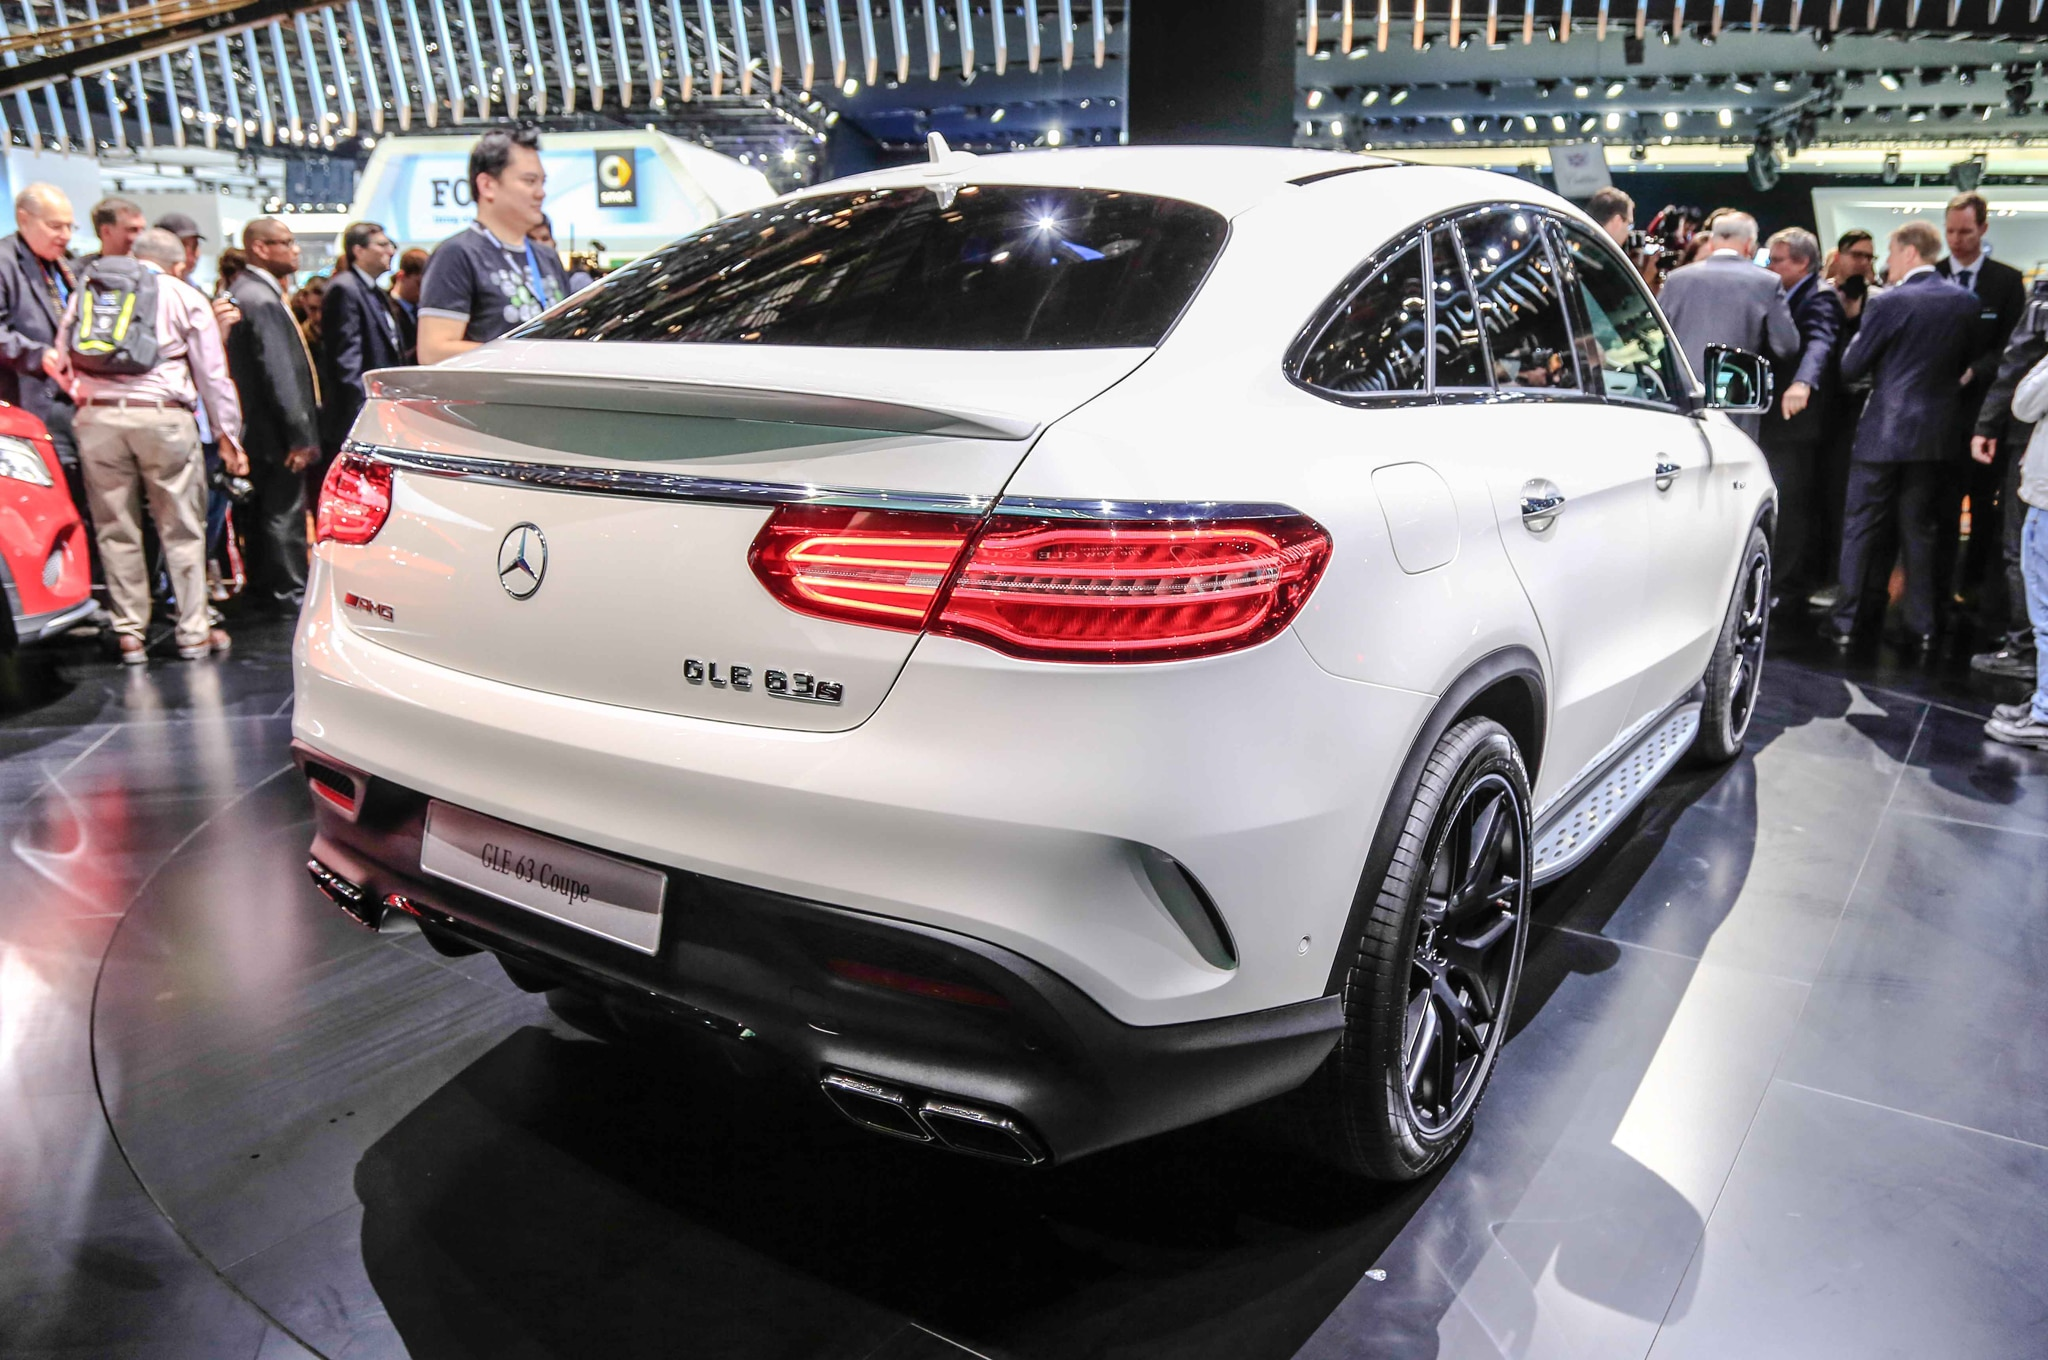 https://st.automobilemag.com/uploads/sites/11/2015/01/2016-Mercedes-Benz-GLE63-S-AMG-4Matic-rear-three-quarter.jpg